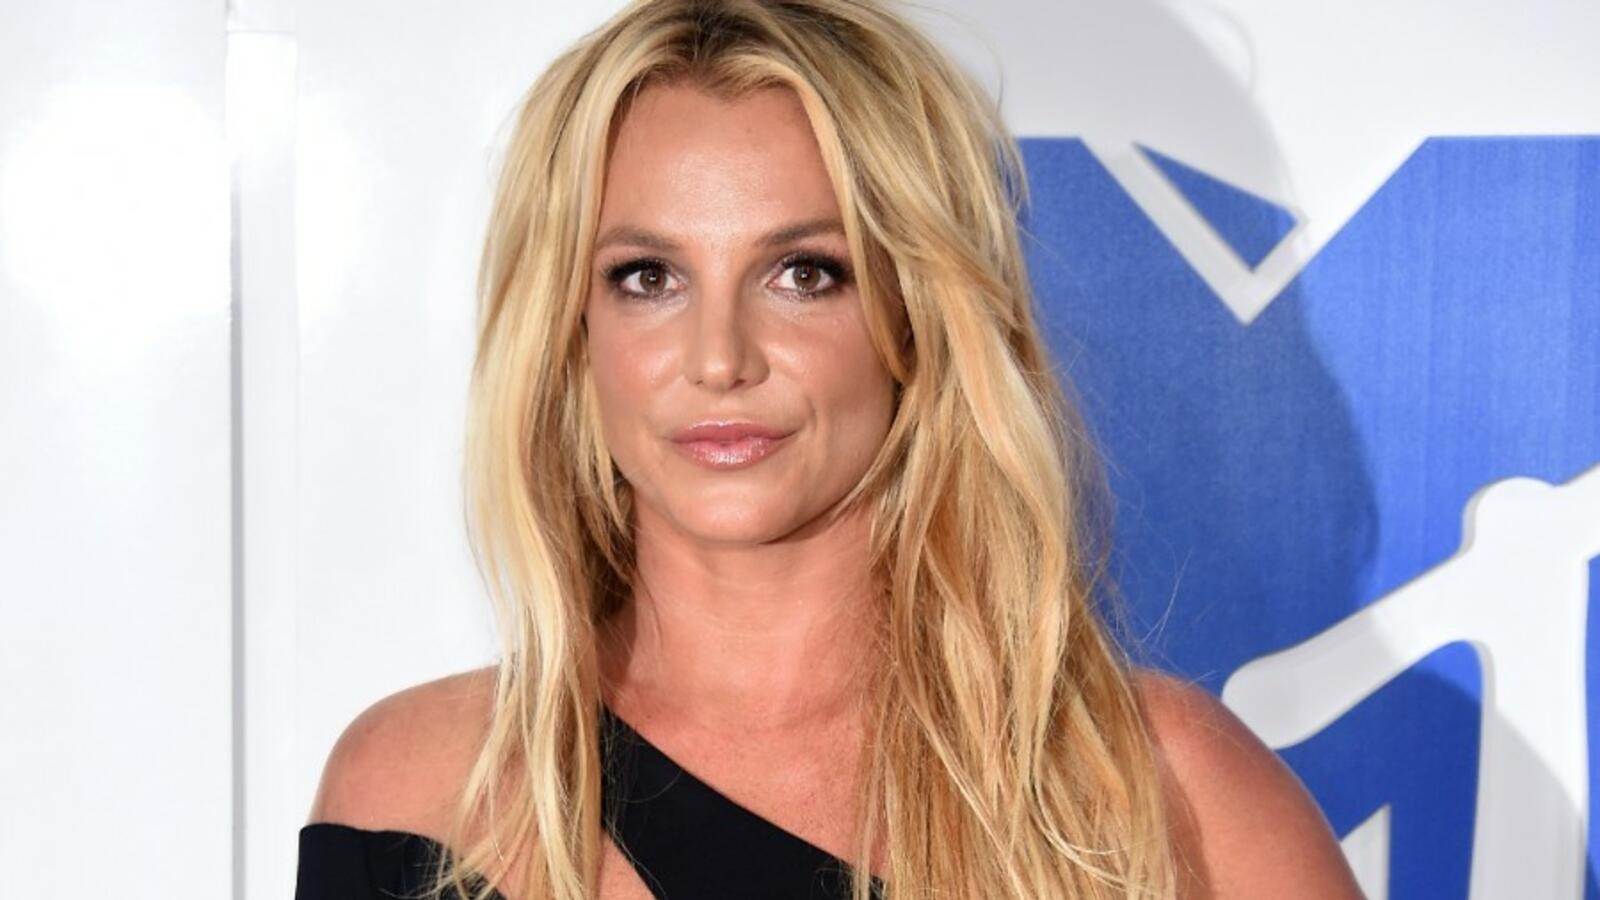 Even Britney Spears Gets Bailed On At The Last Minute: 'It's Humiliating'